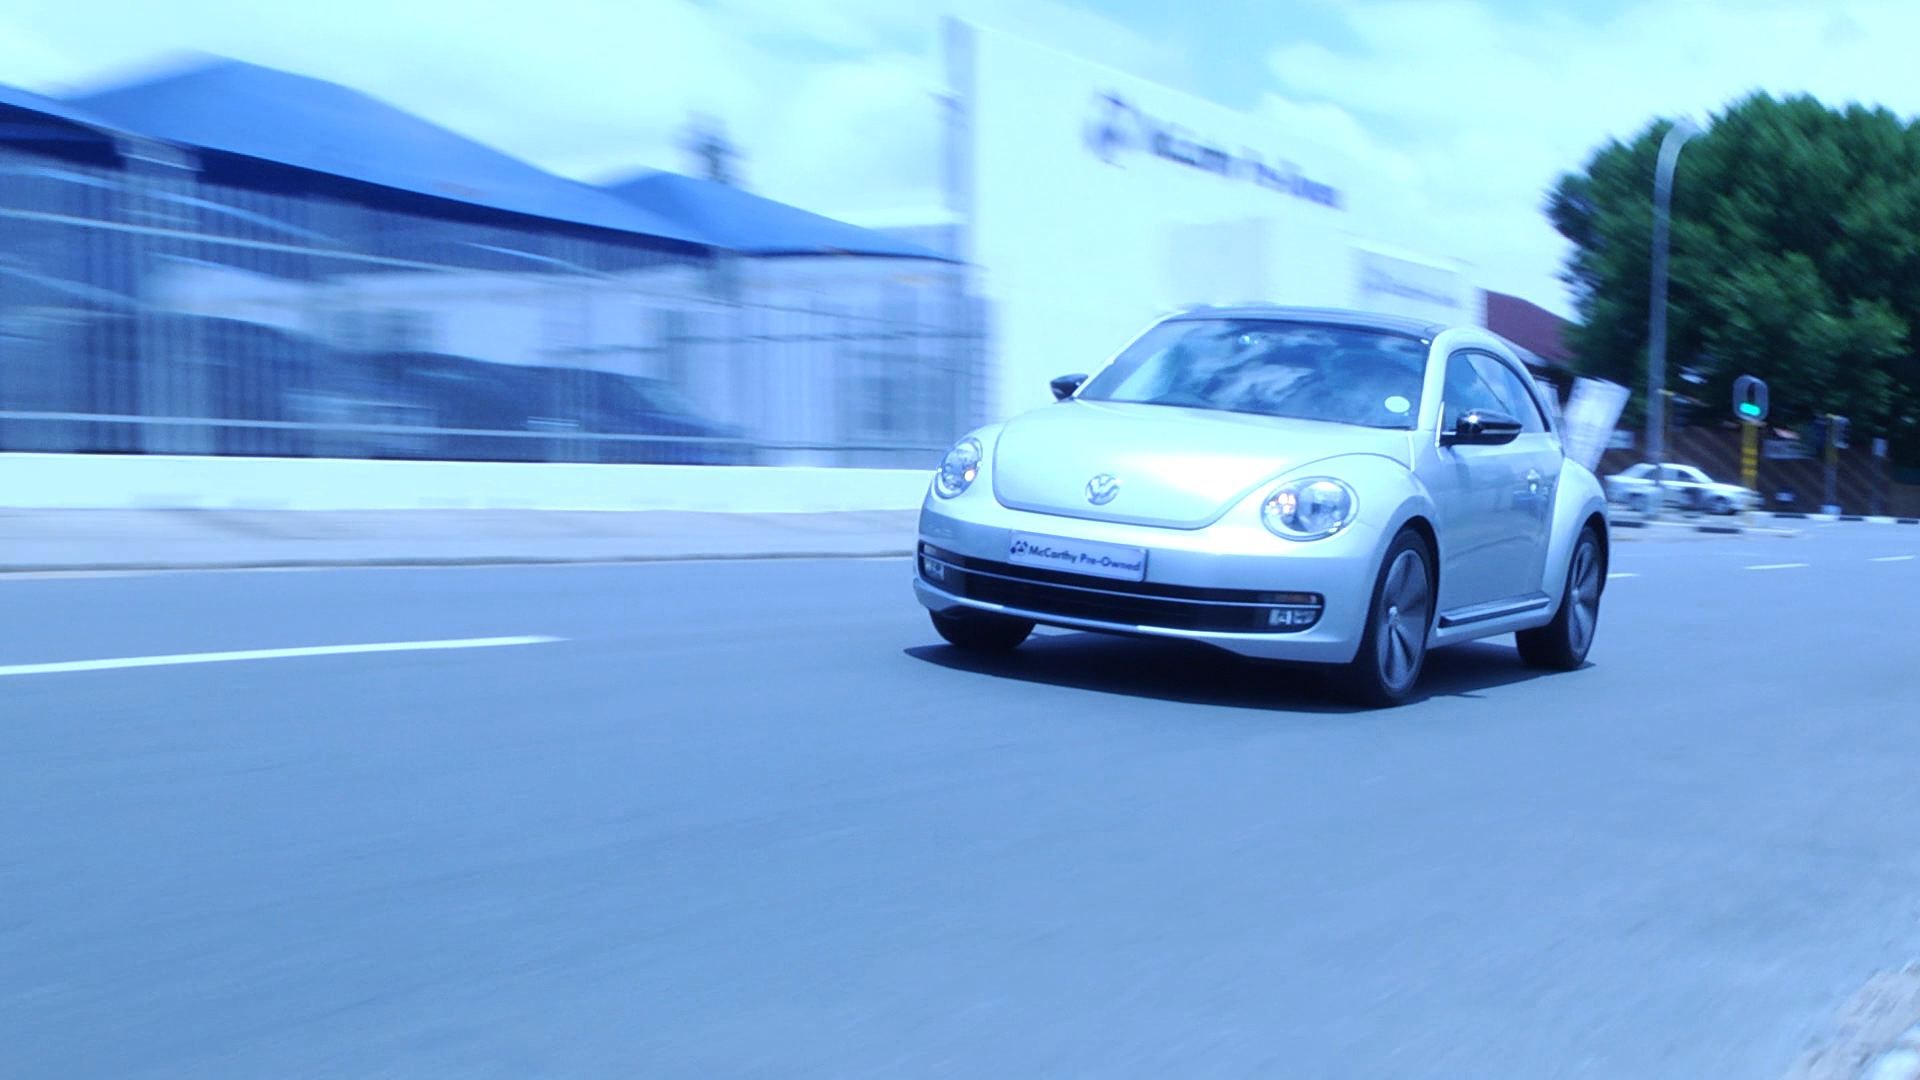 Volkswagen Beetle 1.4 TSI Sport (2013): Used Car Review – Surf4cars